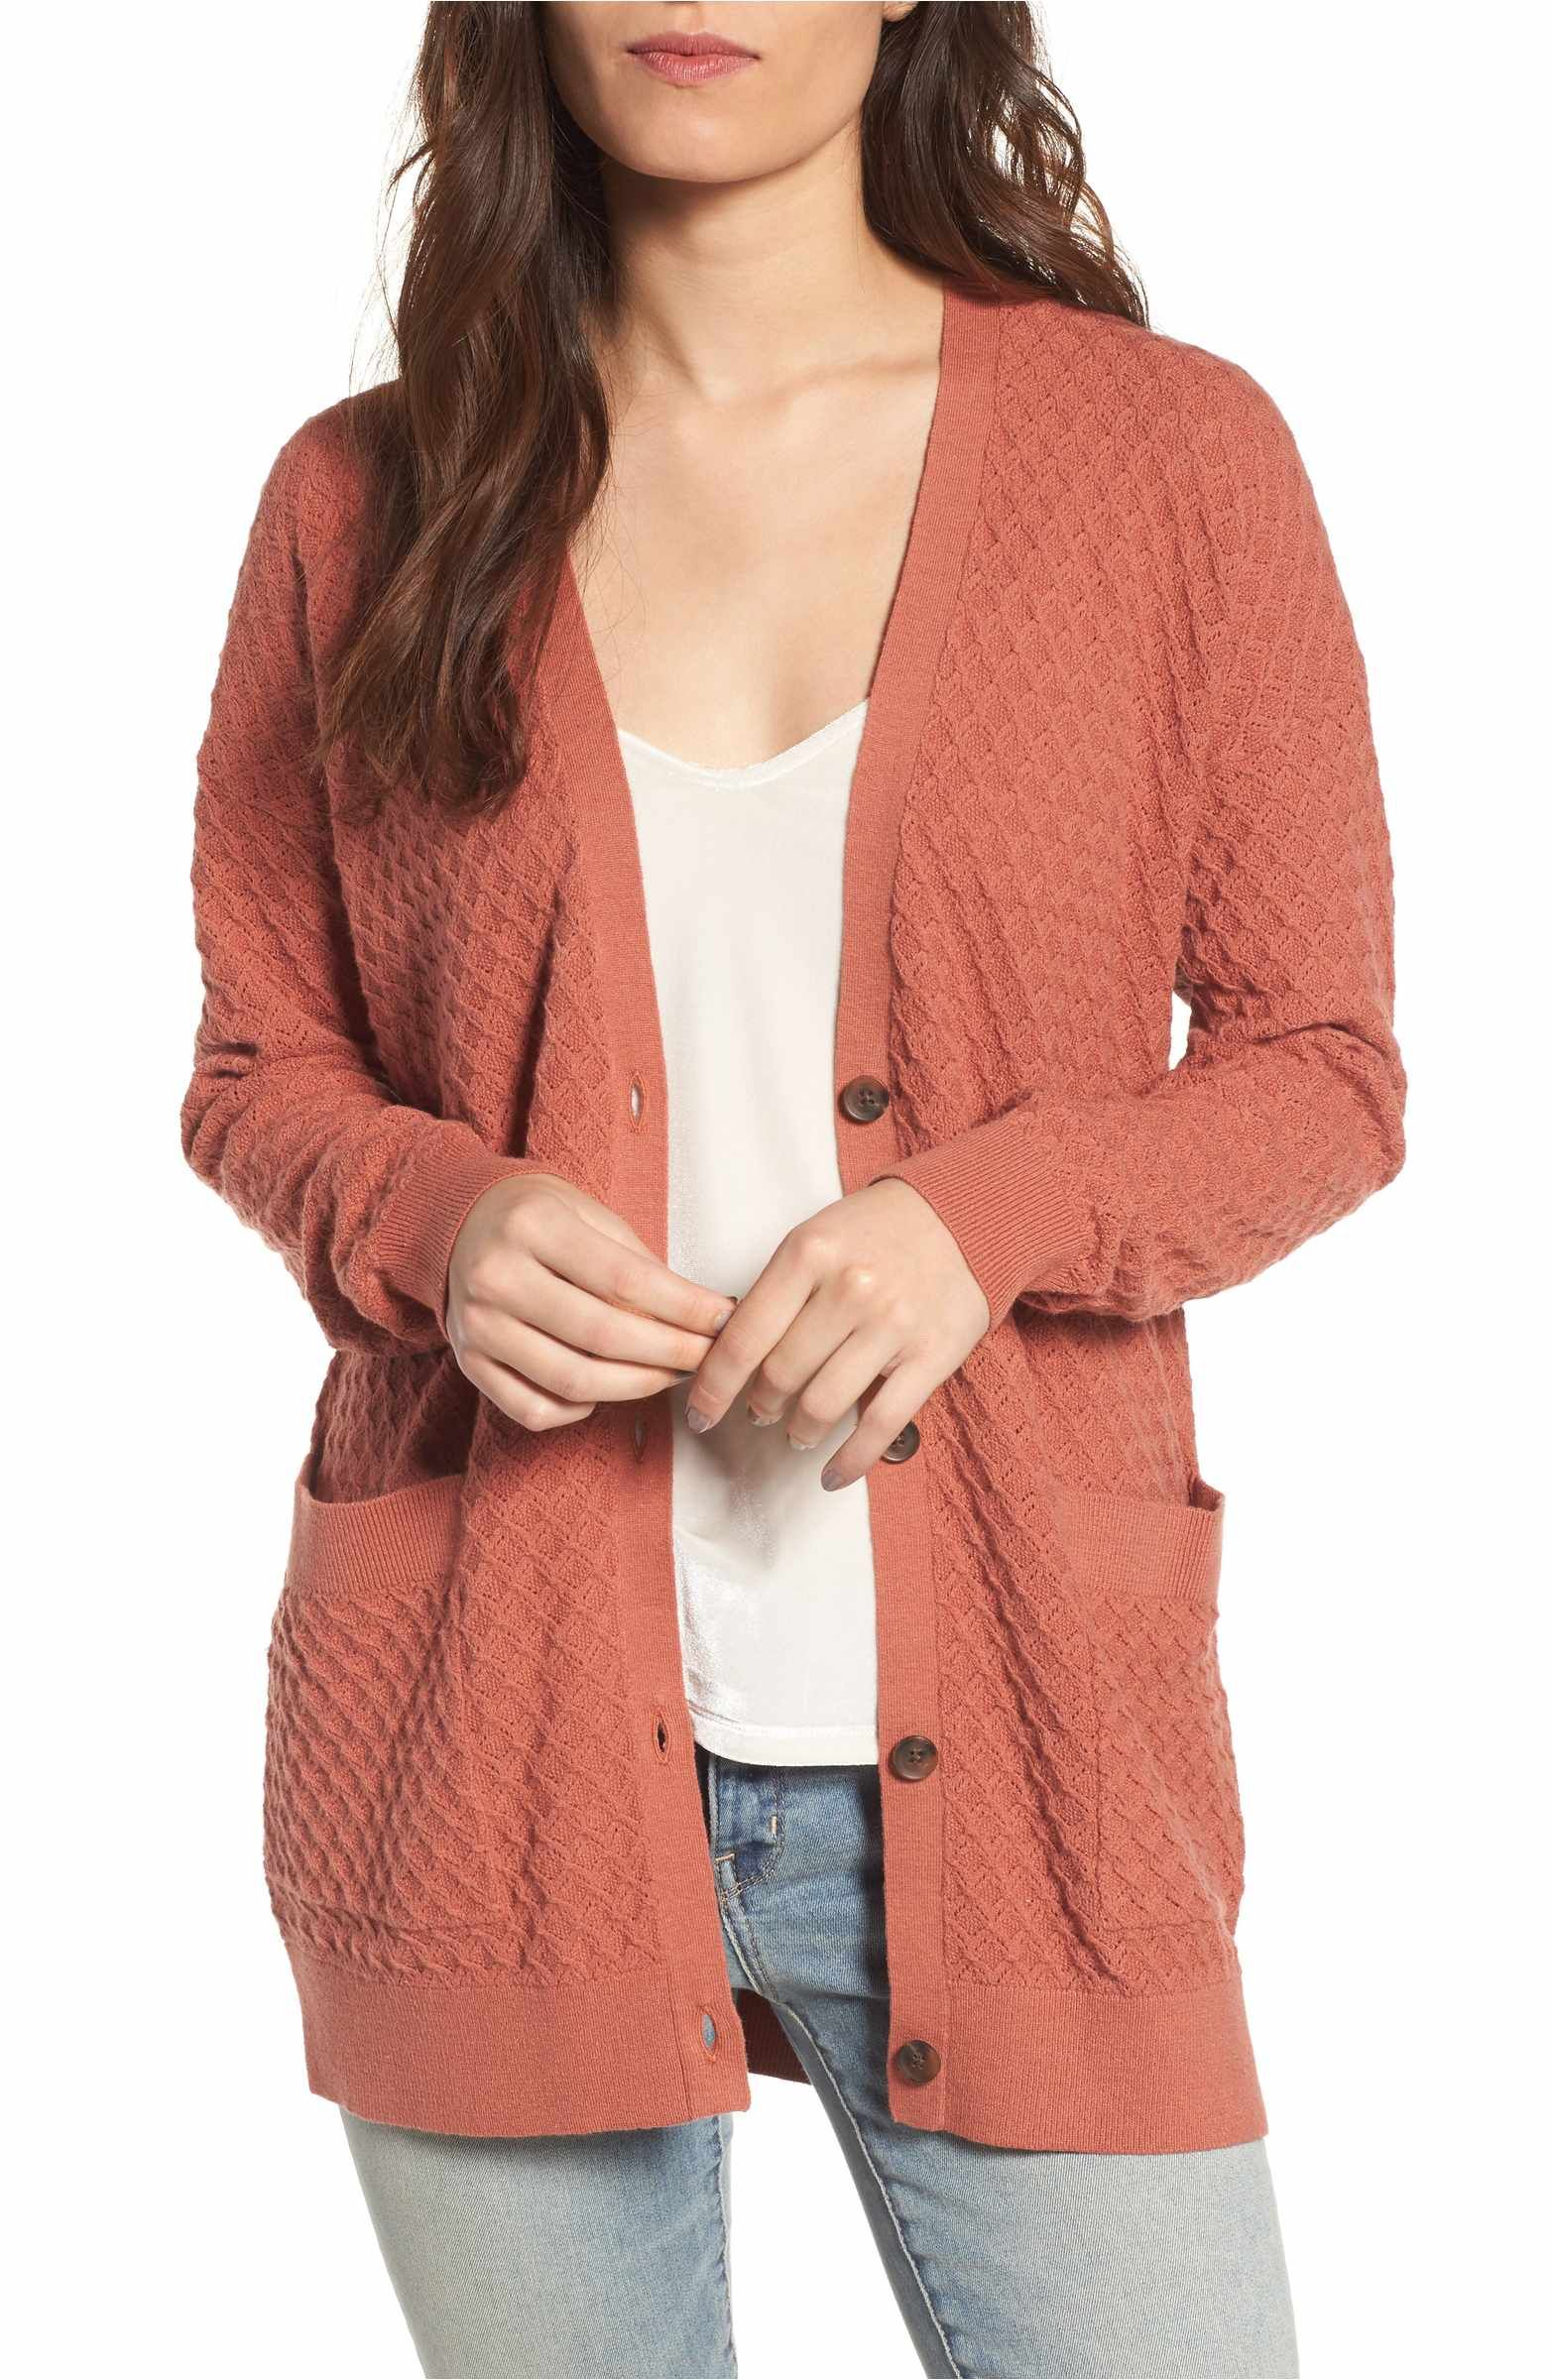 97e4832781 Main Image - Hinge Pointelle Cardigan Sweater